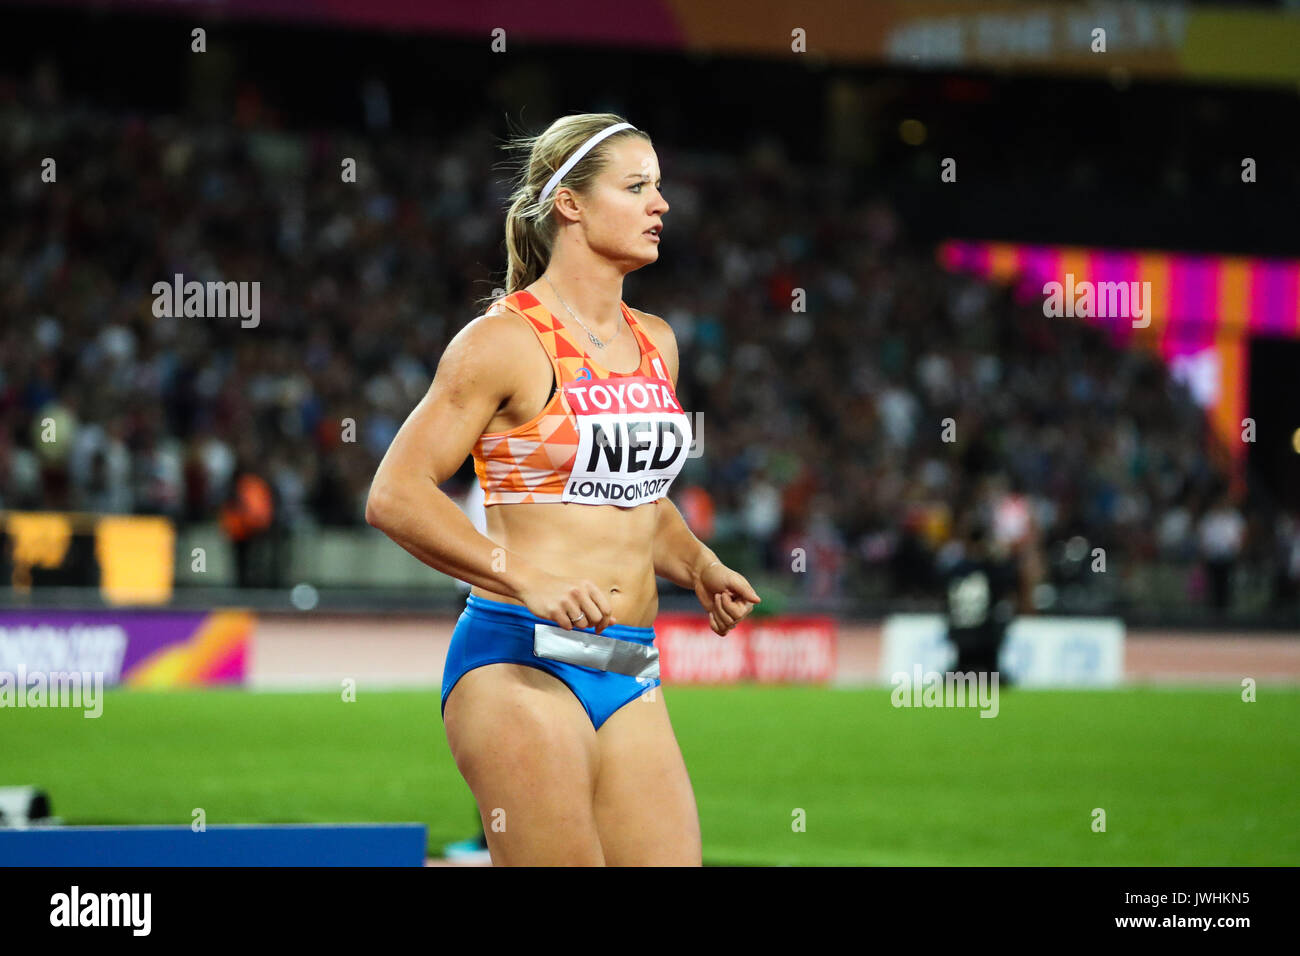 The Netherlands' Dafne Schippers ahead of the women's 4x100m relay on day nine of the IAAF London 2017 world Championships at the London Stadium. © Paul Davey. - Stock Image